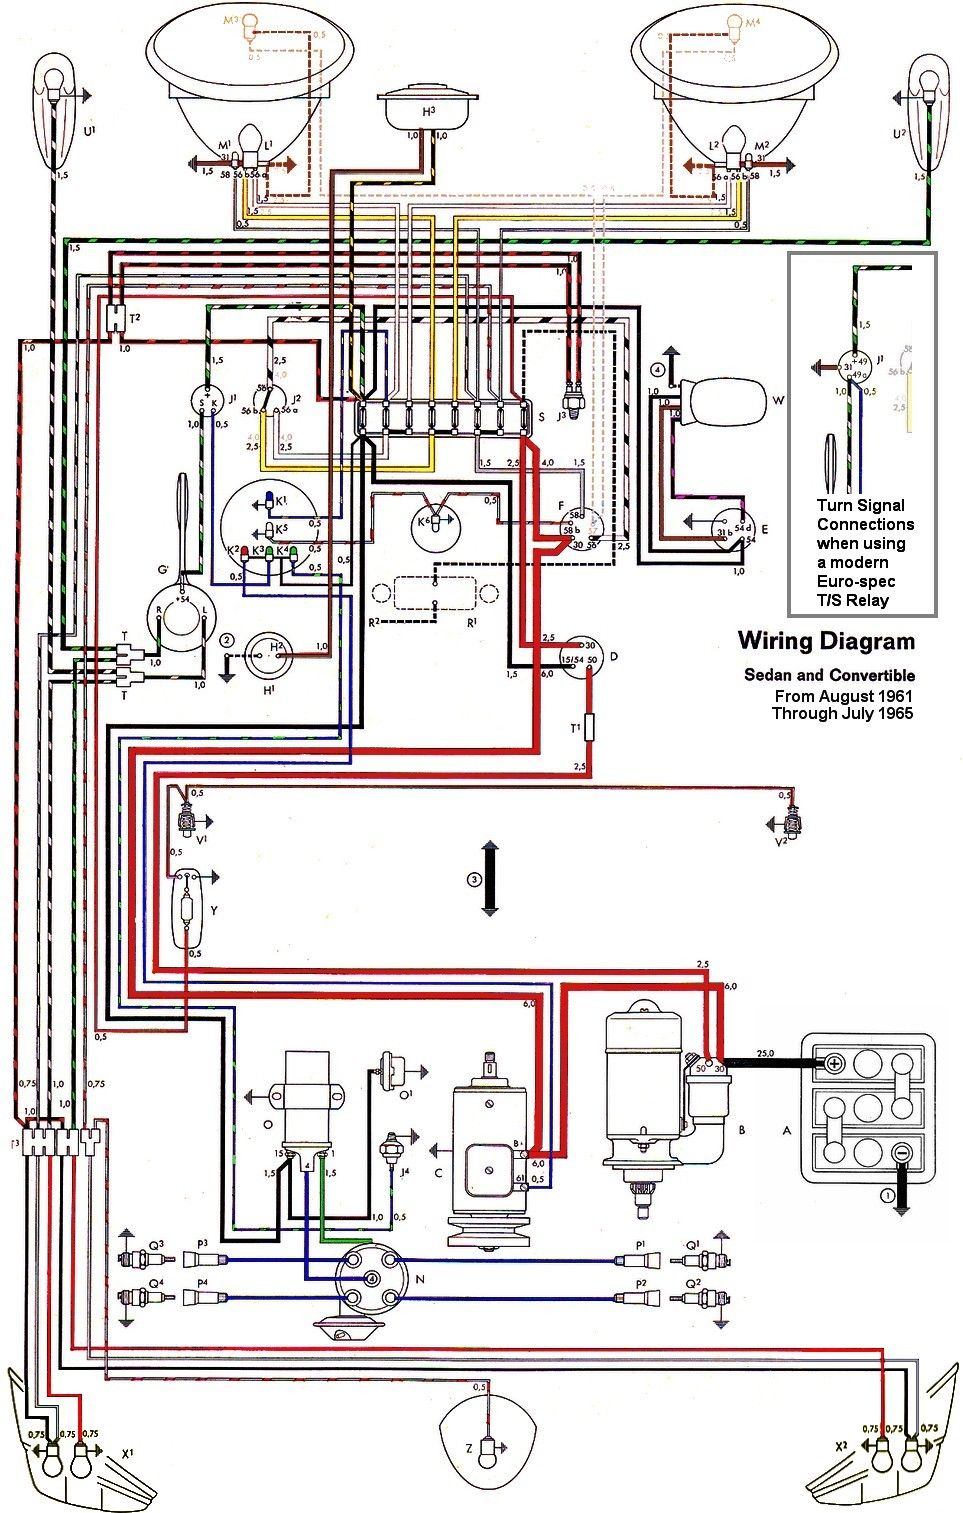 wiring diagram vw beetle sedan and convertible 1961 1965 vw rh pinterest com 1965 vw bug wiring harness 1965 vw bug wiring harness